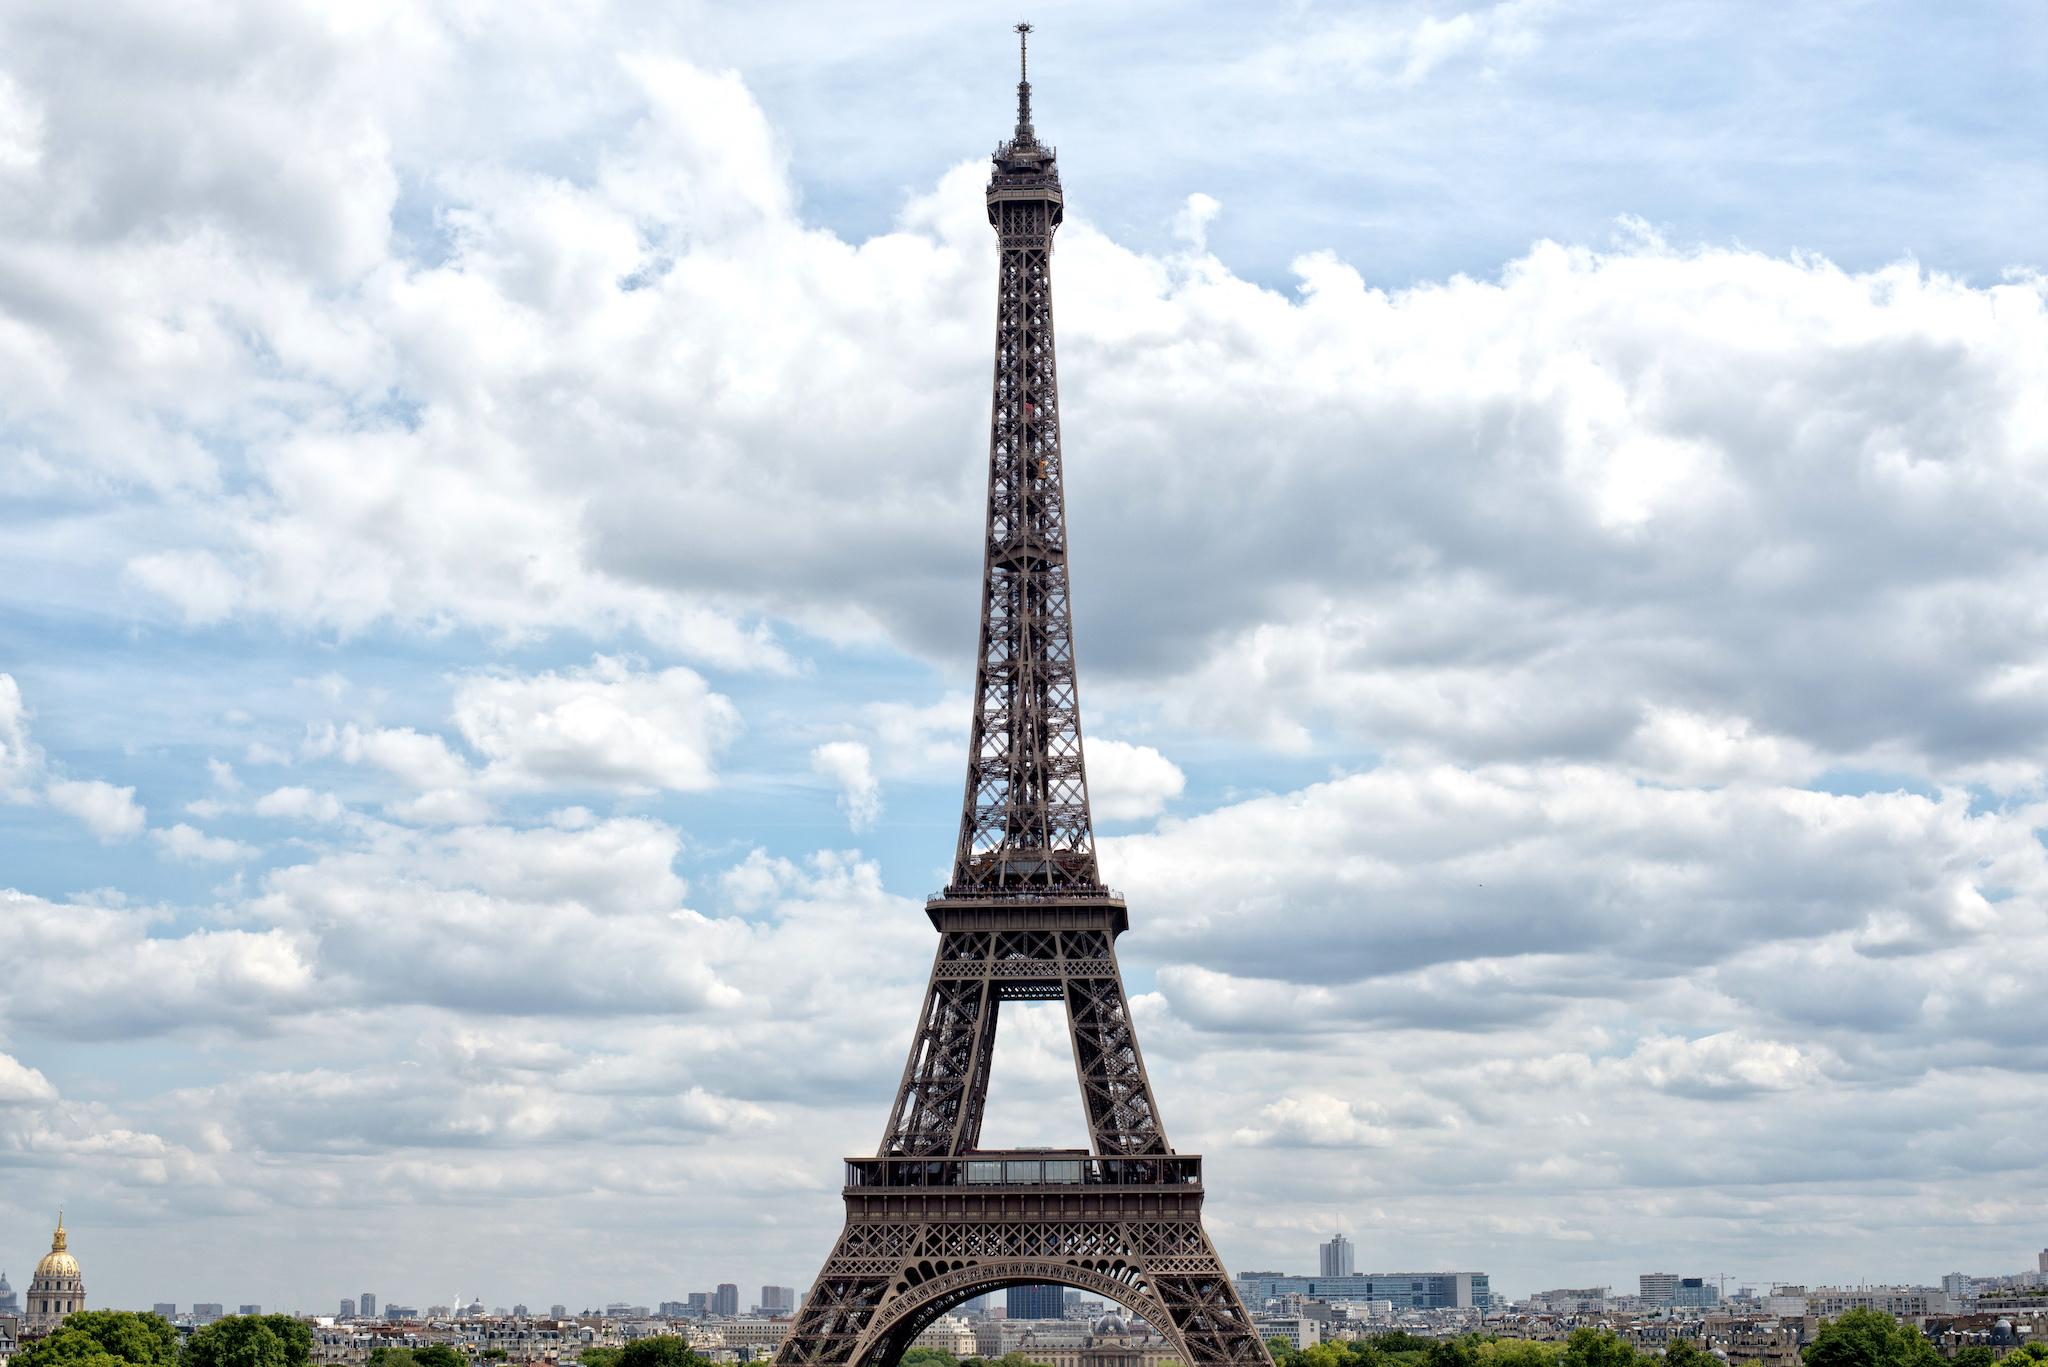 The Eiffel Tower stands tall on a bright, beautiful day in Paris